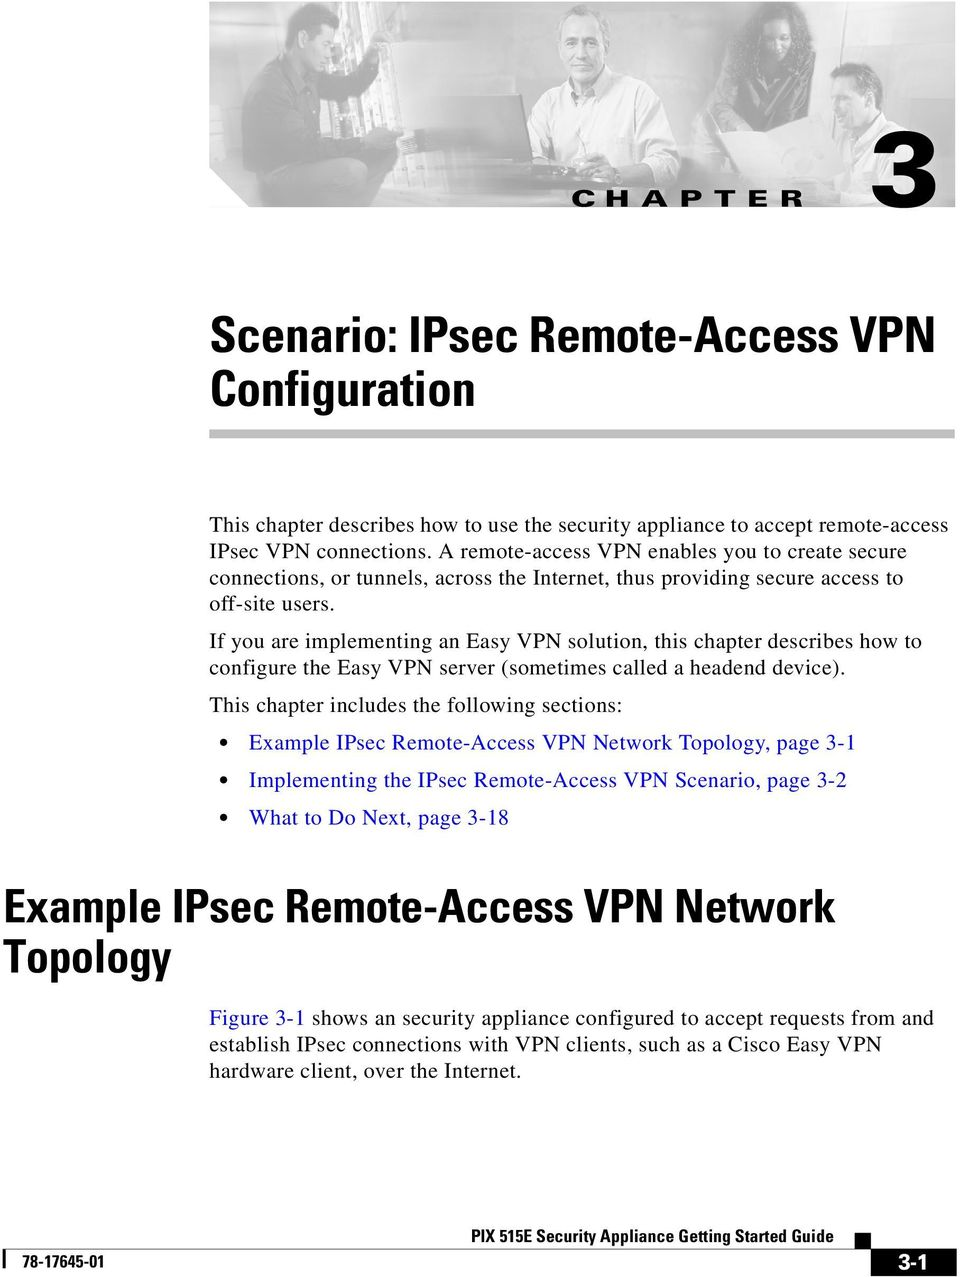 If you are implementing an Easy VPN solution, this chapter describes how to configure the Easy VPN server (sometimes called a headend device).